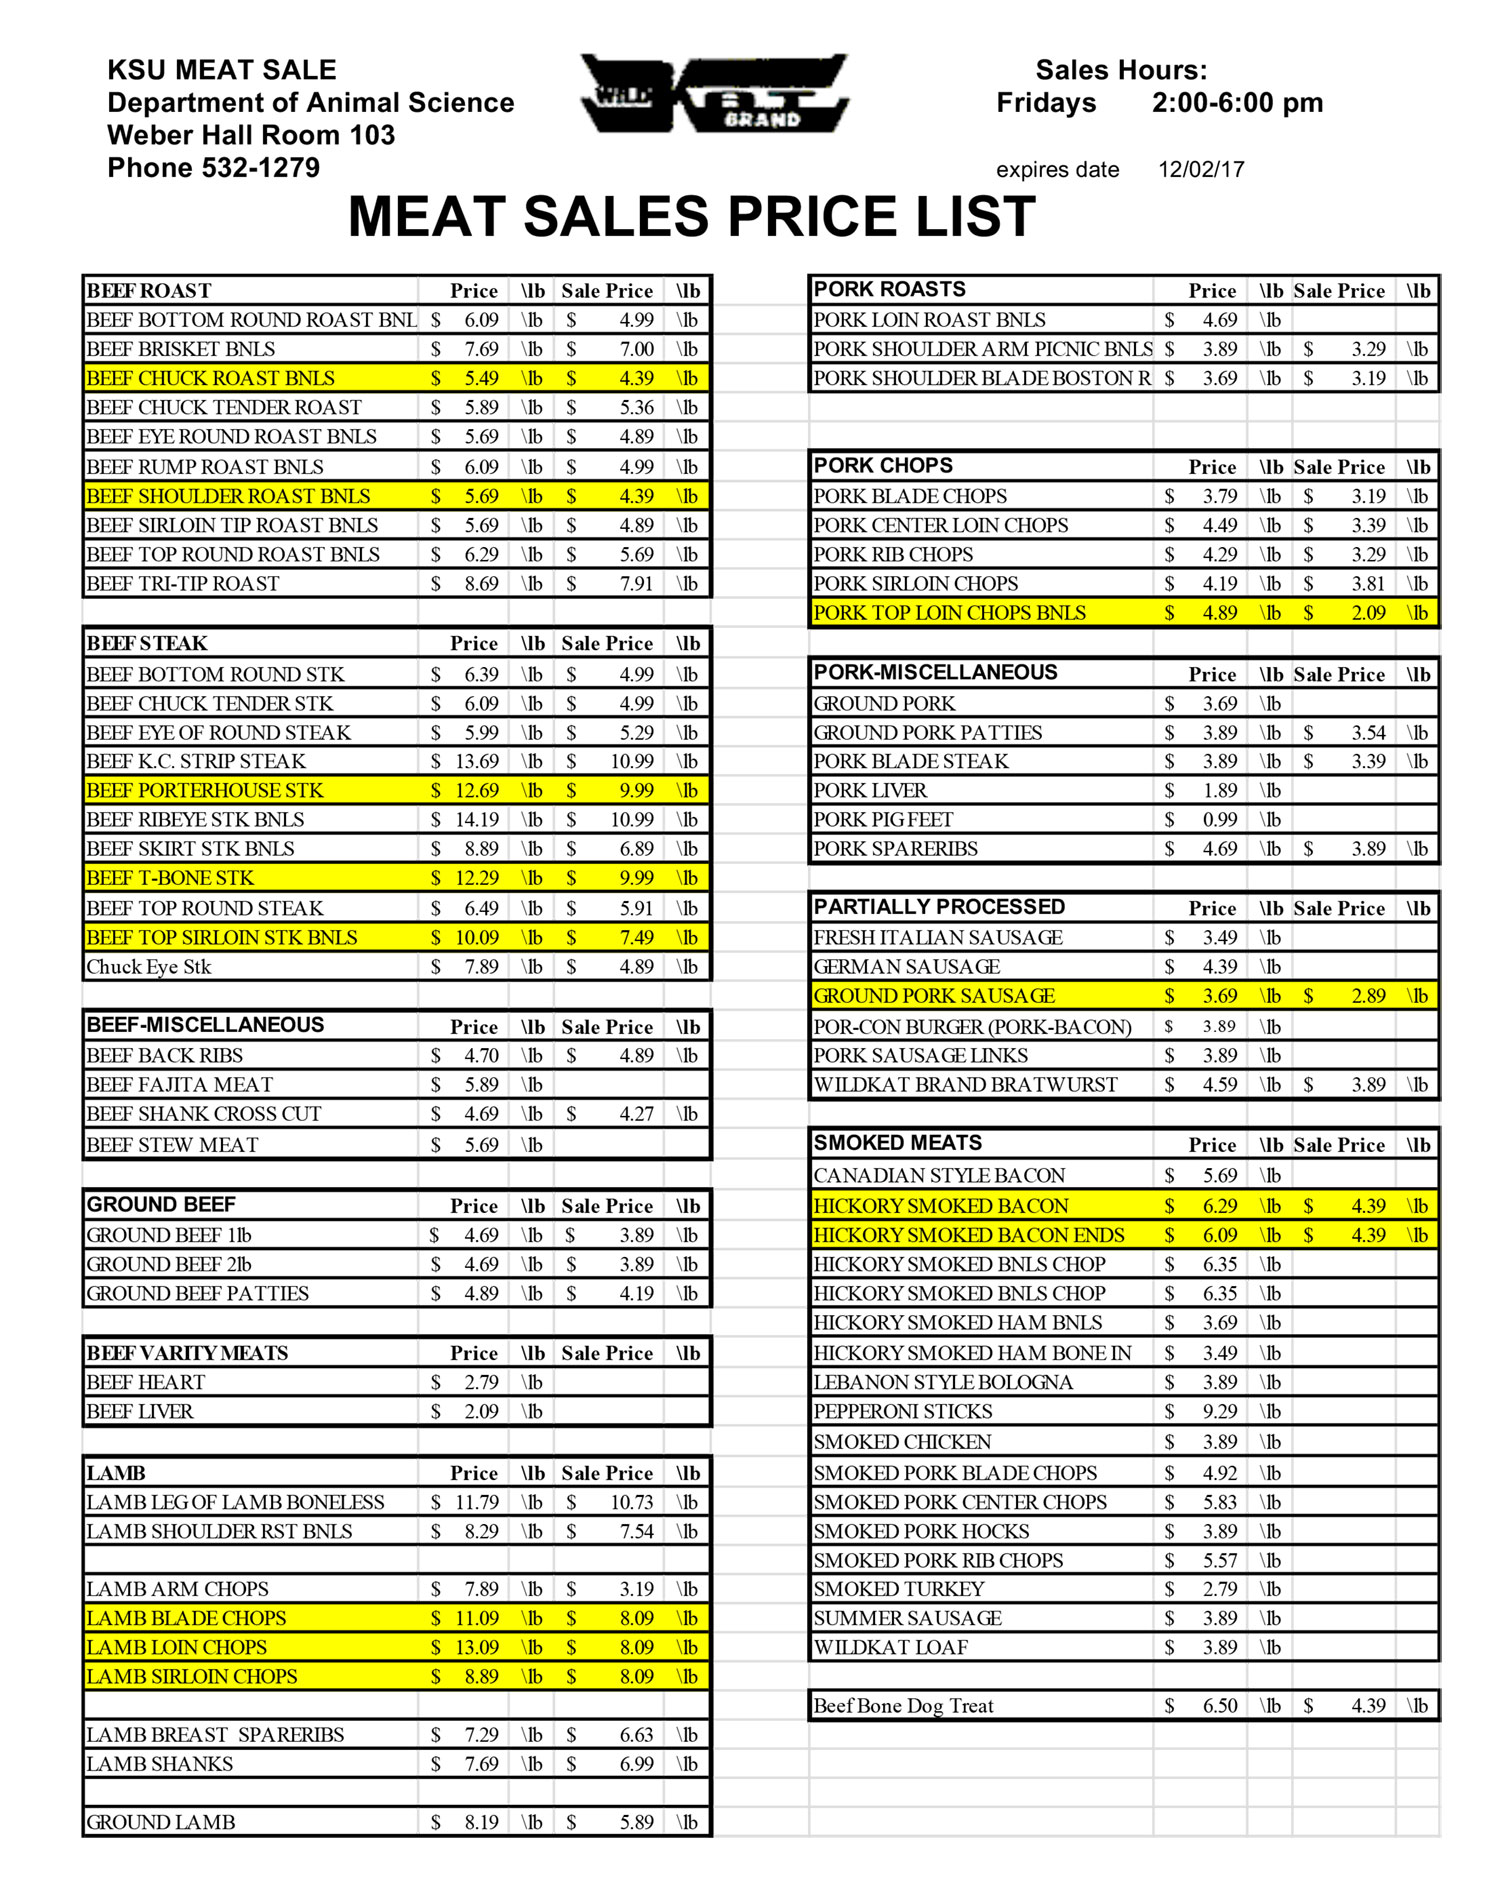 KSU Meat Sale